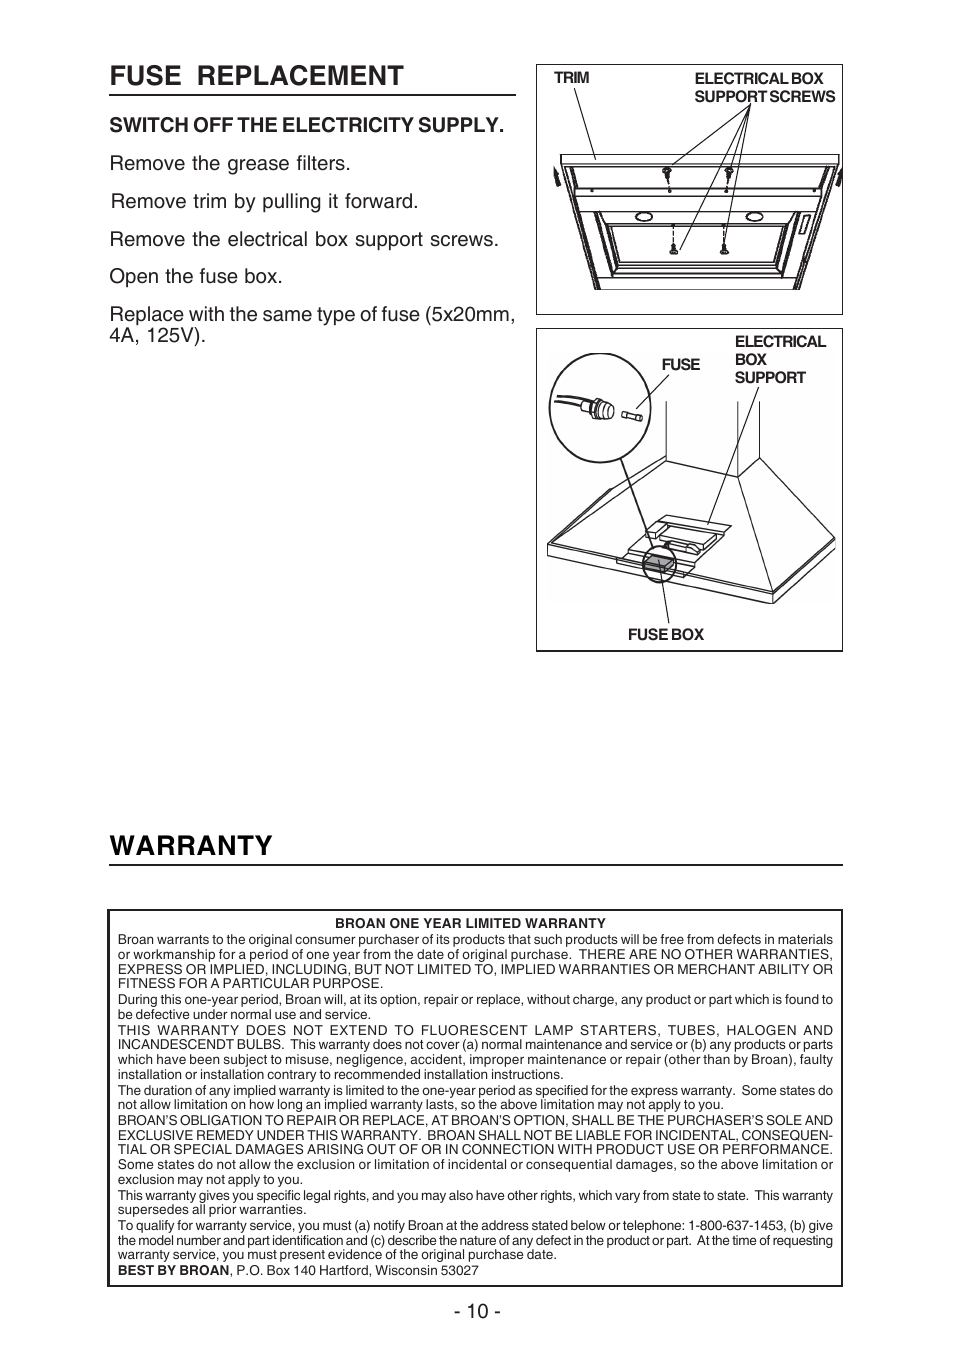 Fuse Replacement Warranty Best K42 User Manual Page 10 32 Box Removal